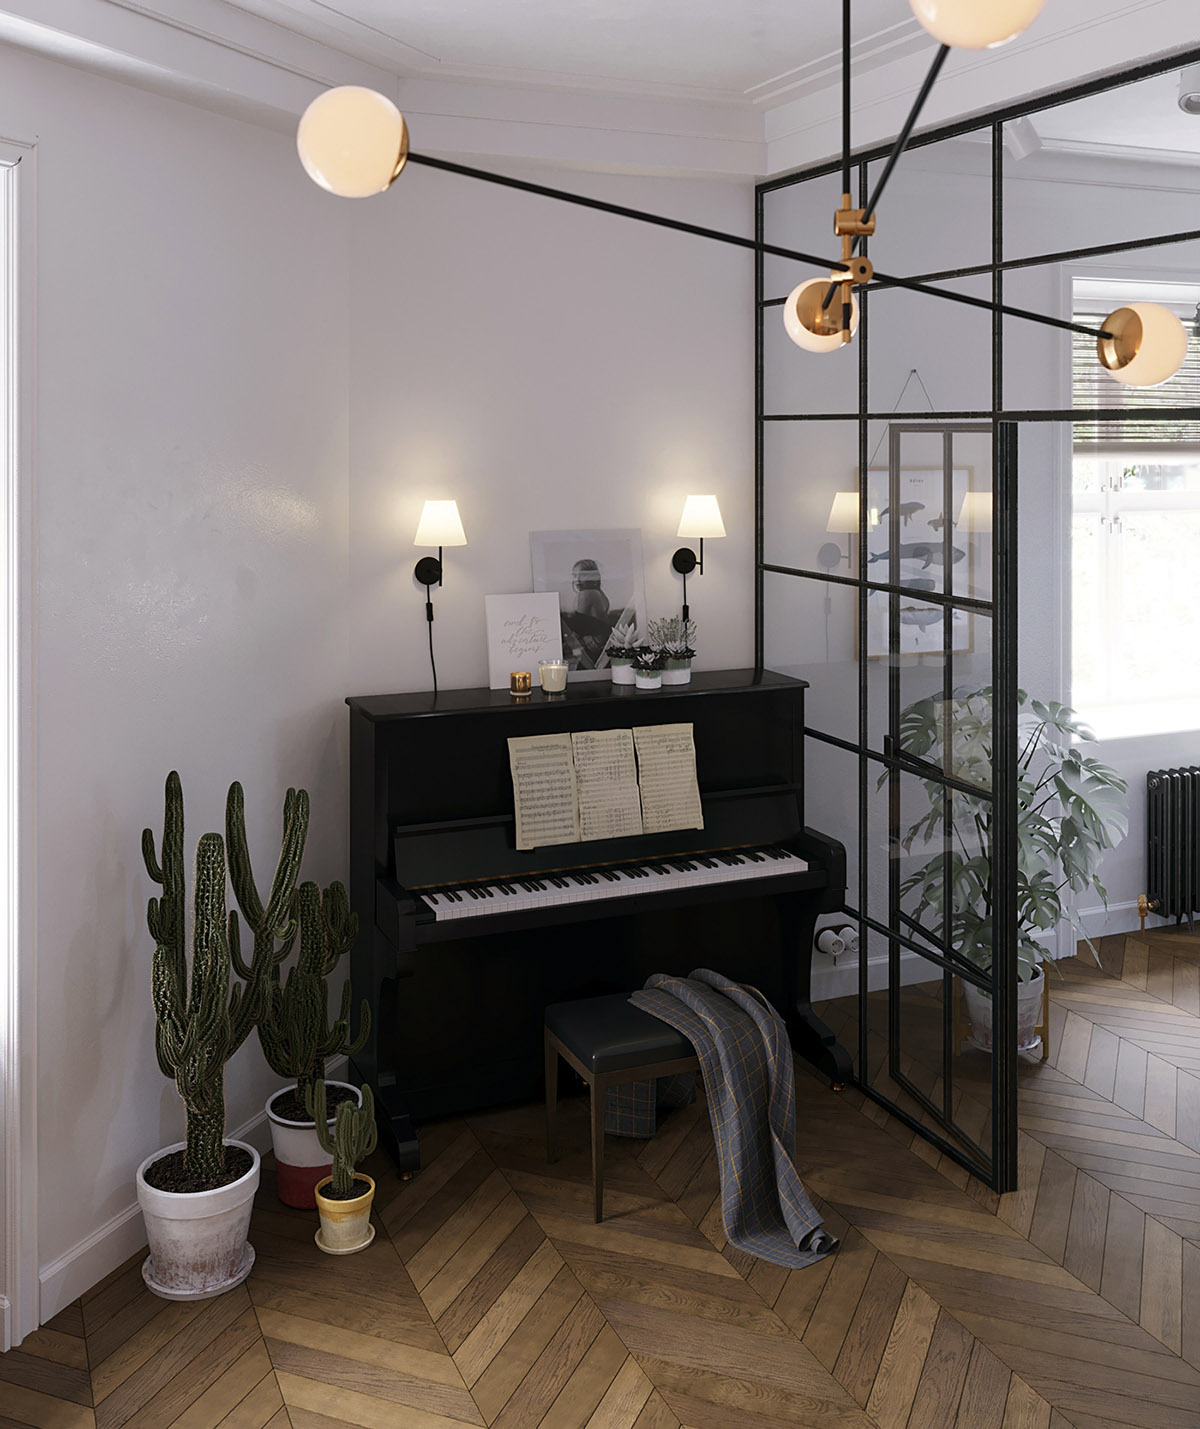 Earthy Eclectic Scandinavian Style Interior images 5